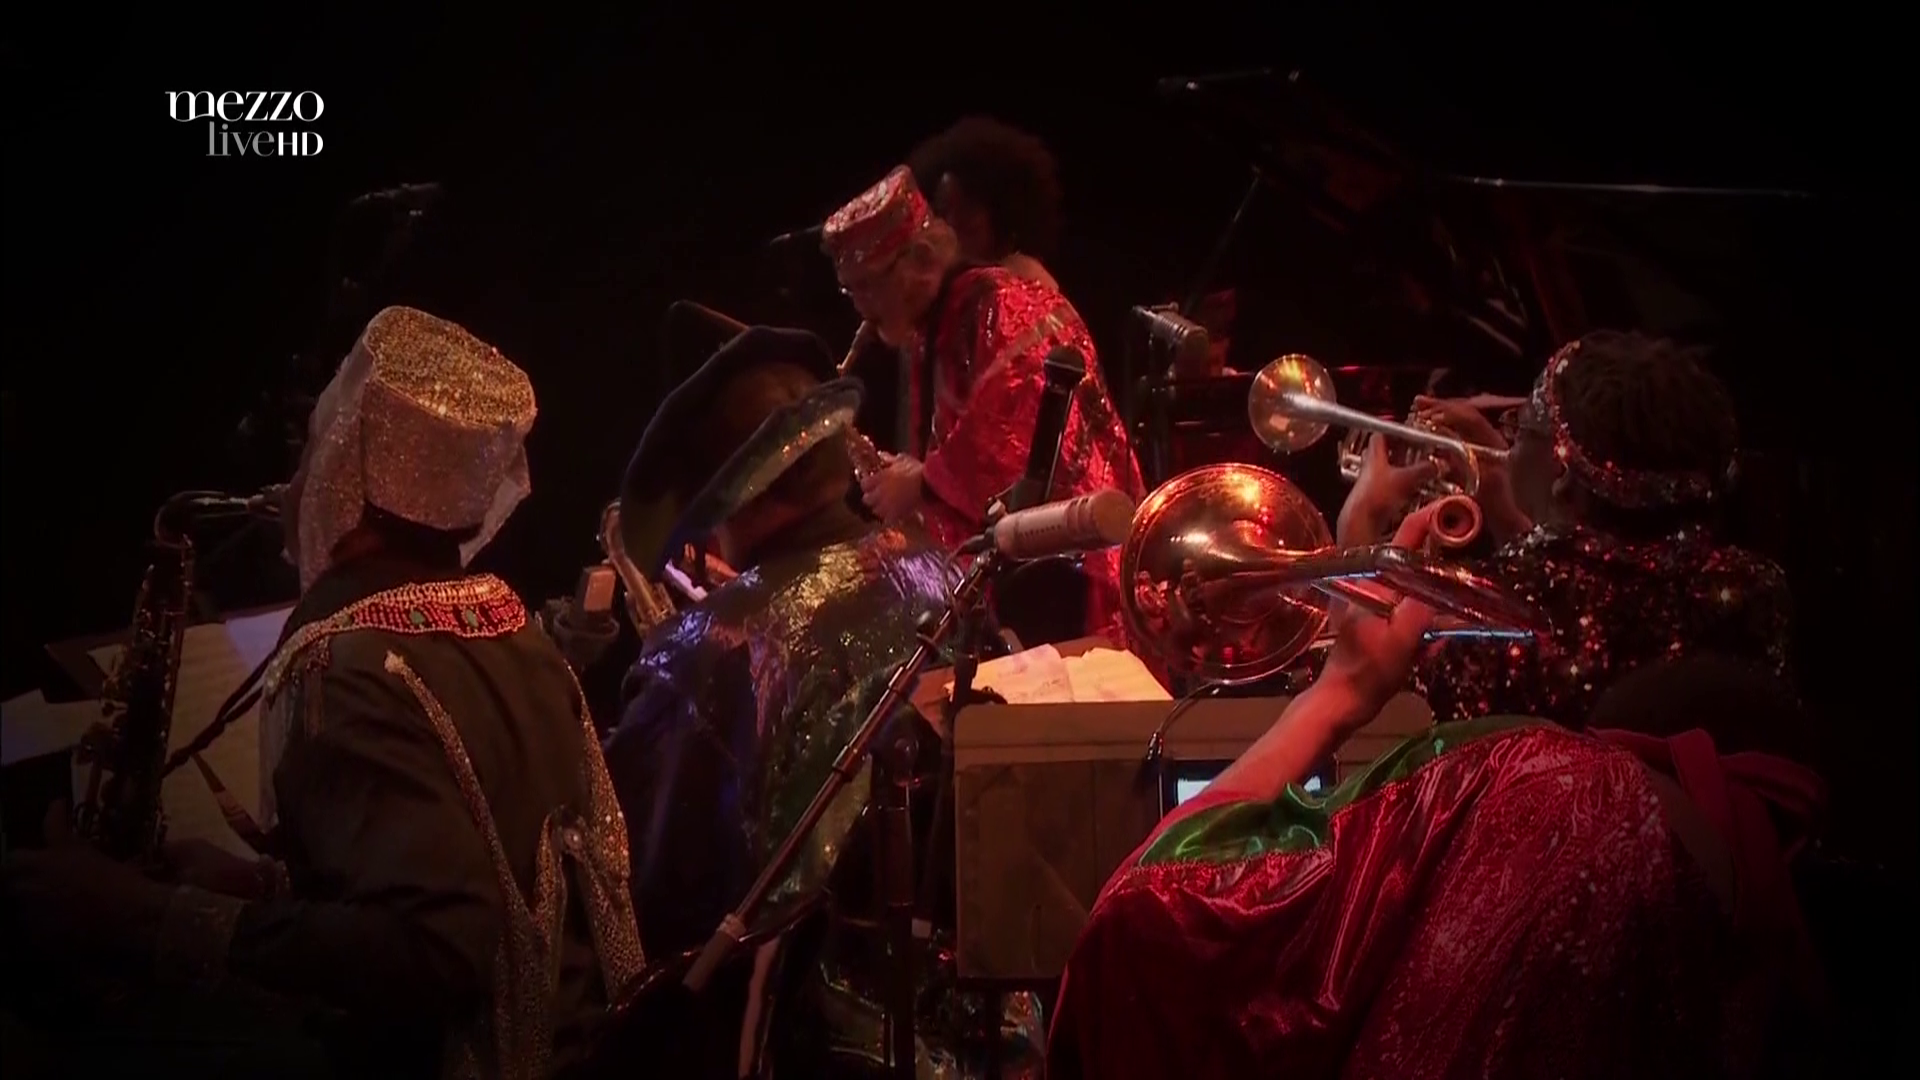 2015 Sun Ra - On Stage With Ra At Banlieues Bleues [HDTV 1080i] 3